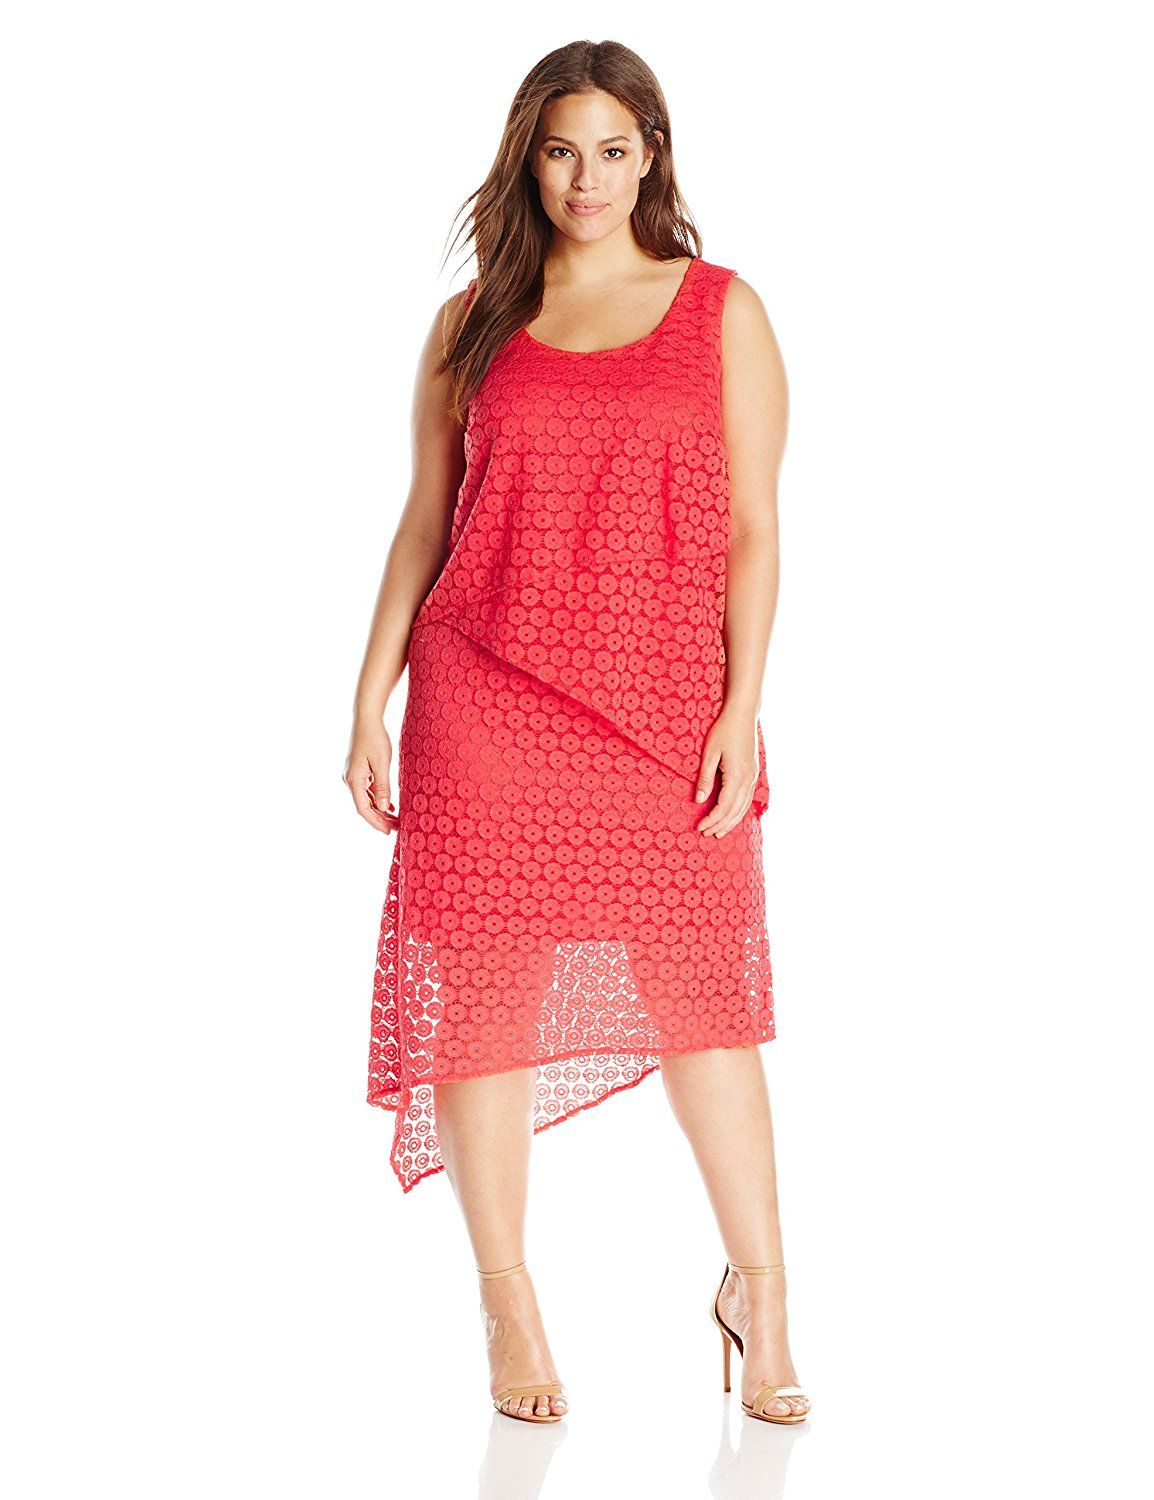 Agb Womens Plus Size Asymmetric Lace Dress To View Further